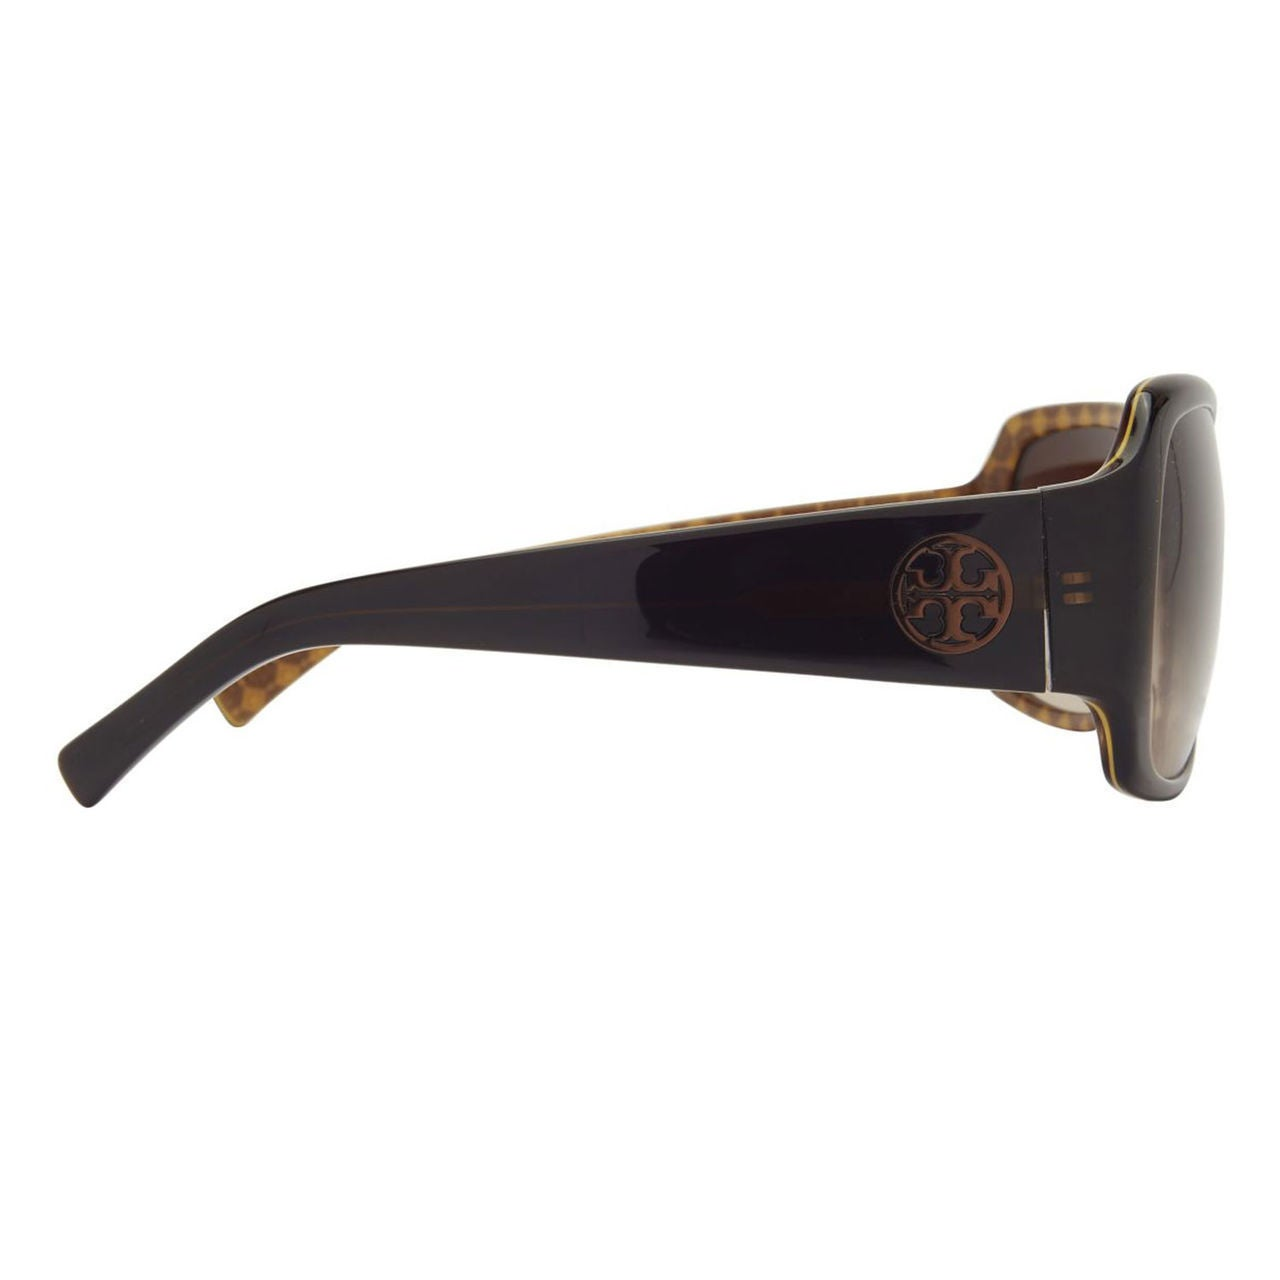 97fefe003b11 Shop Tory Burch Women's TY7004 521/12 Brown Square Plastic Oversized  Sunglasses - Free Shipping Today - Overstock - 10237868